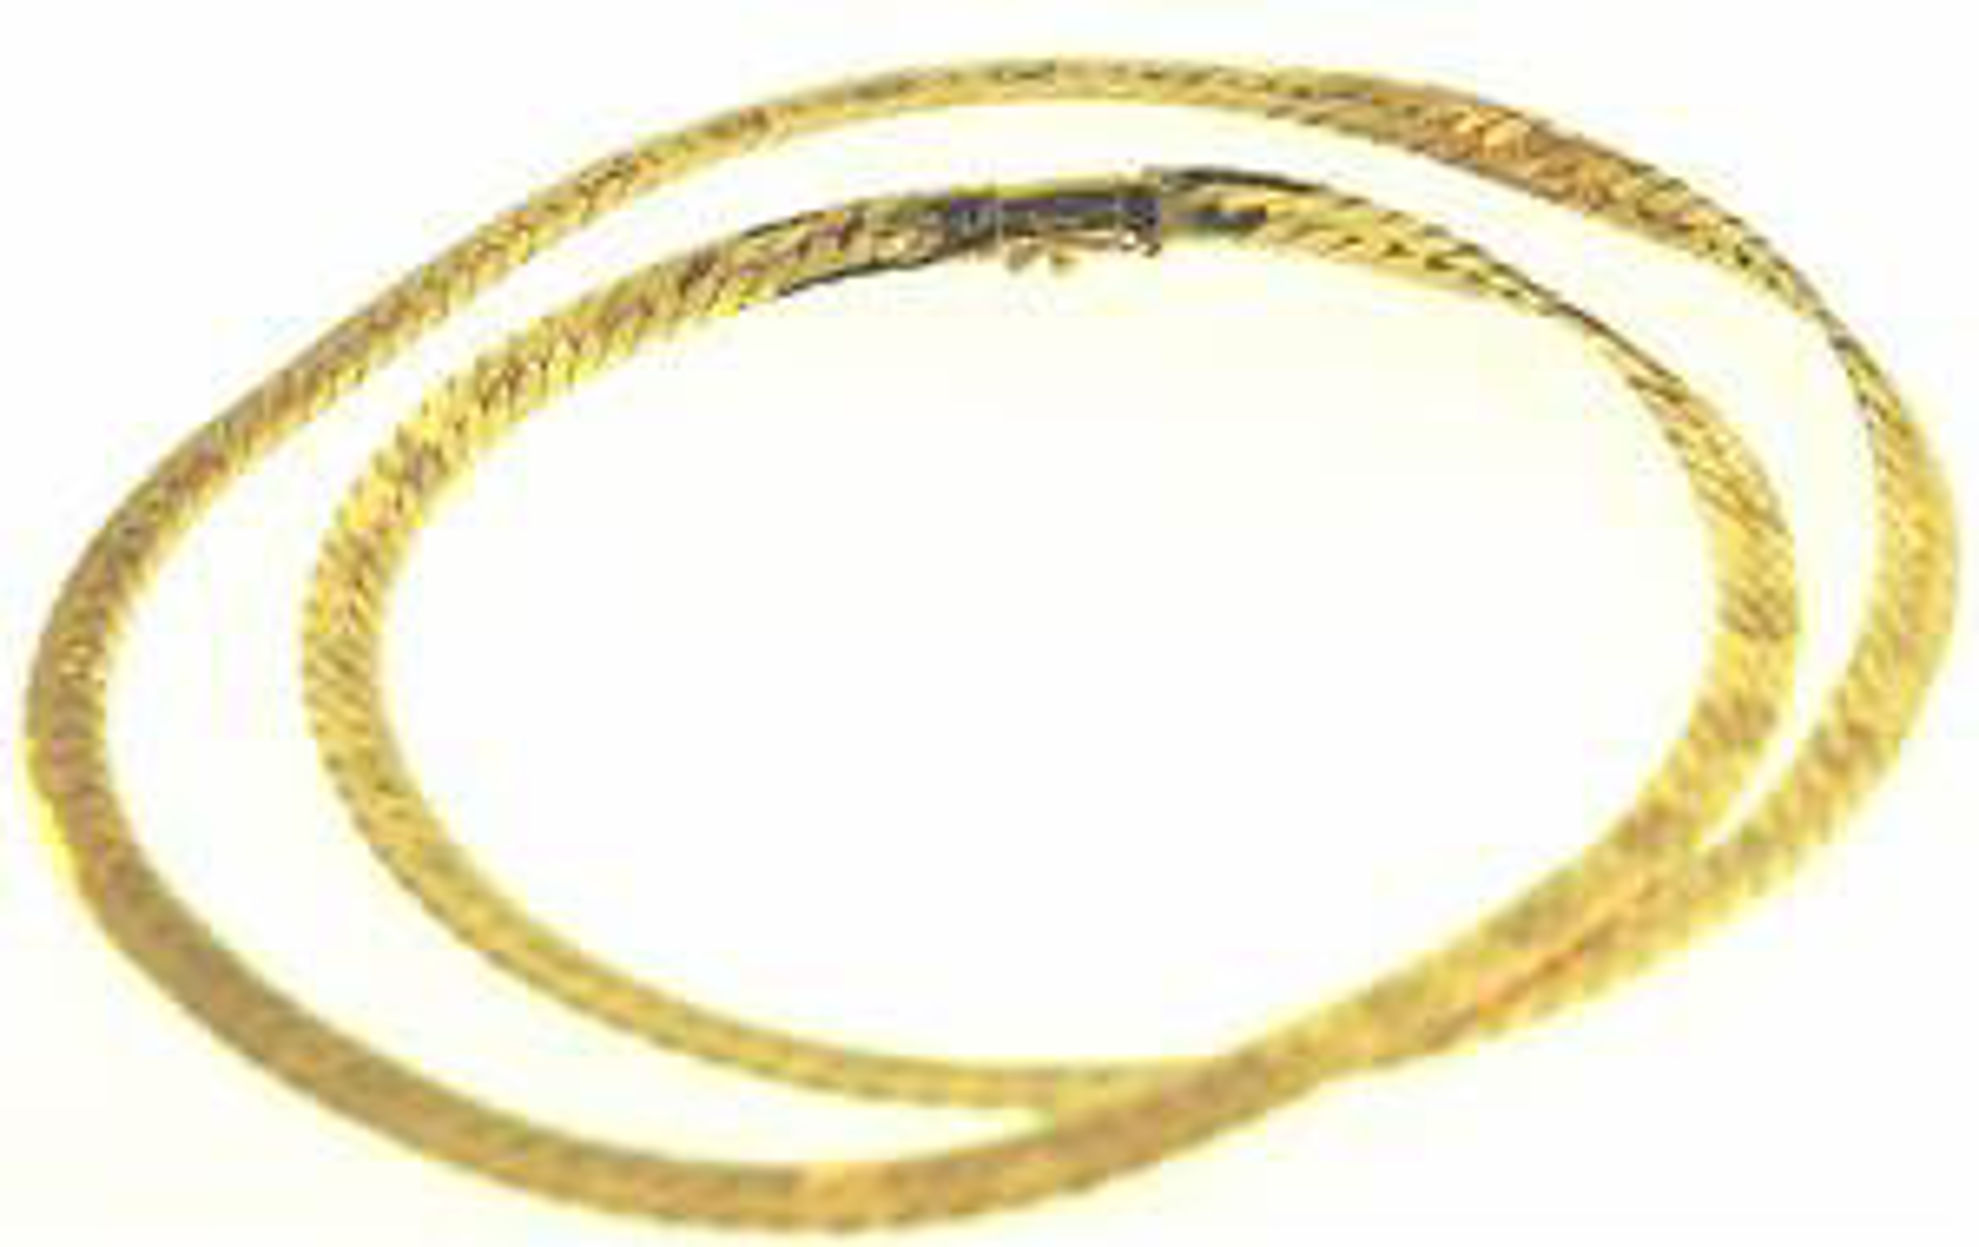 Picture of Chains 14kt-18.2 DWT, 28.3 Grams